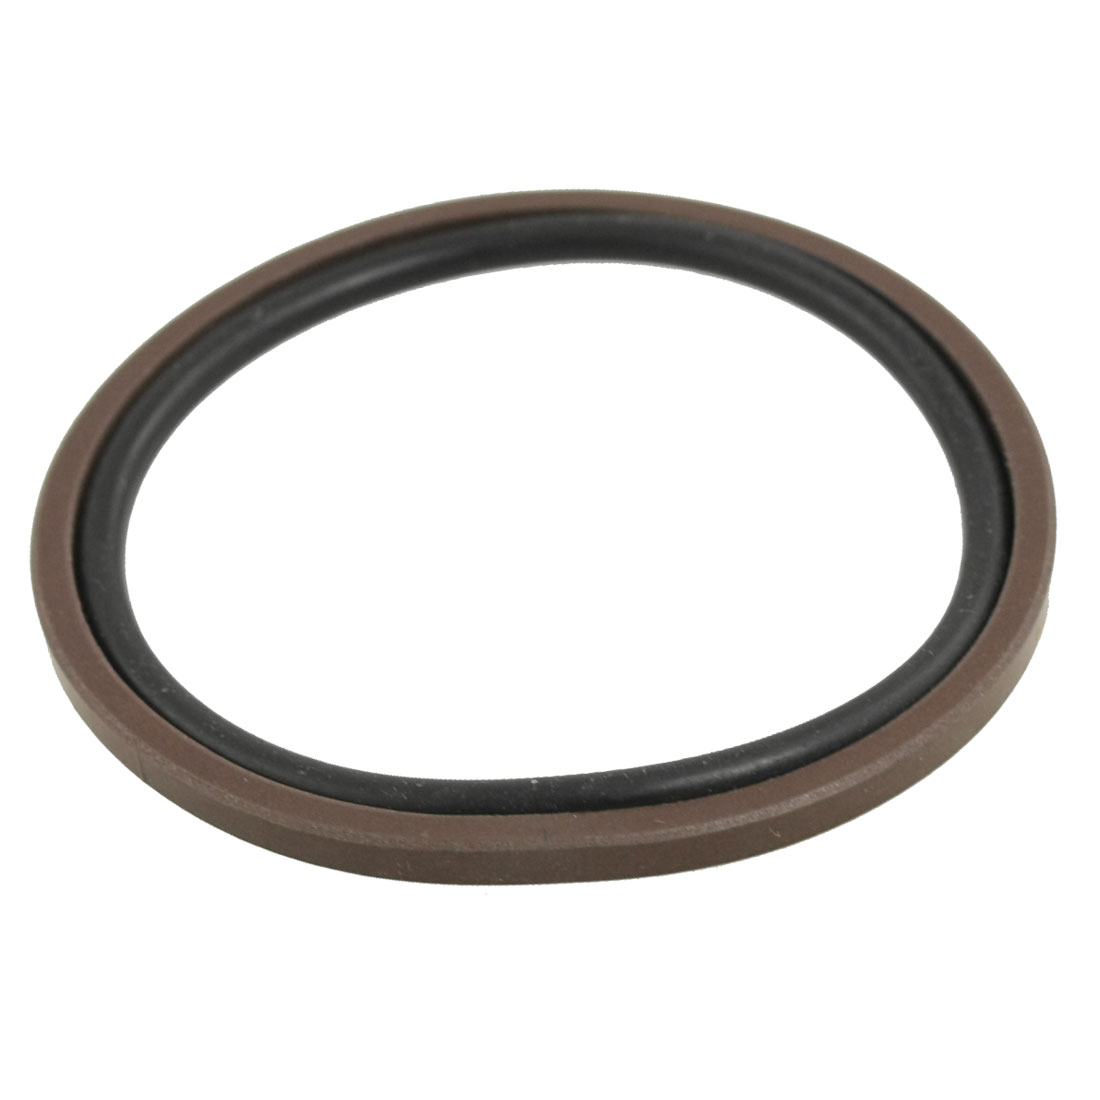 Hydraulic Cylinder Piston Seal Glyd Ring Gasket Sealing 75x64x4.2mm